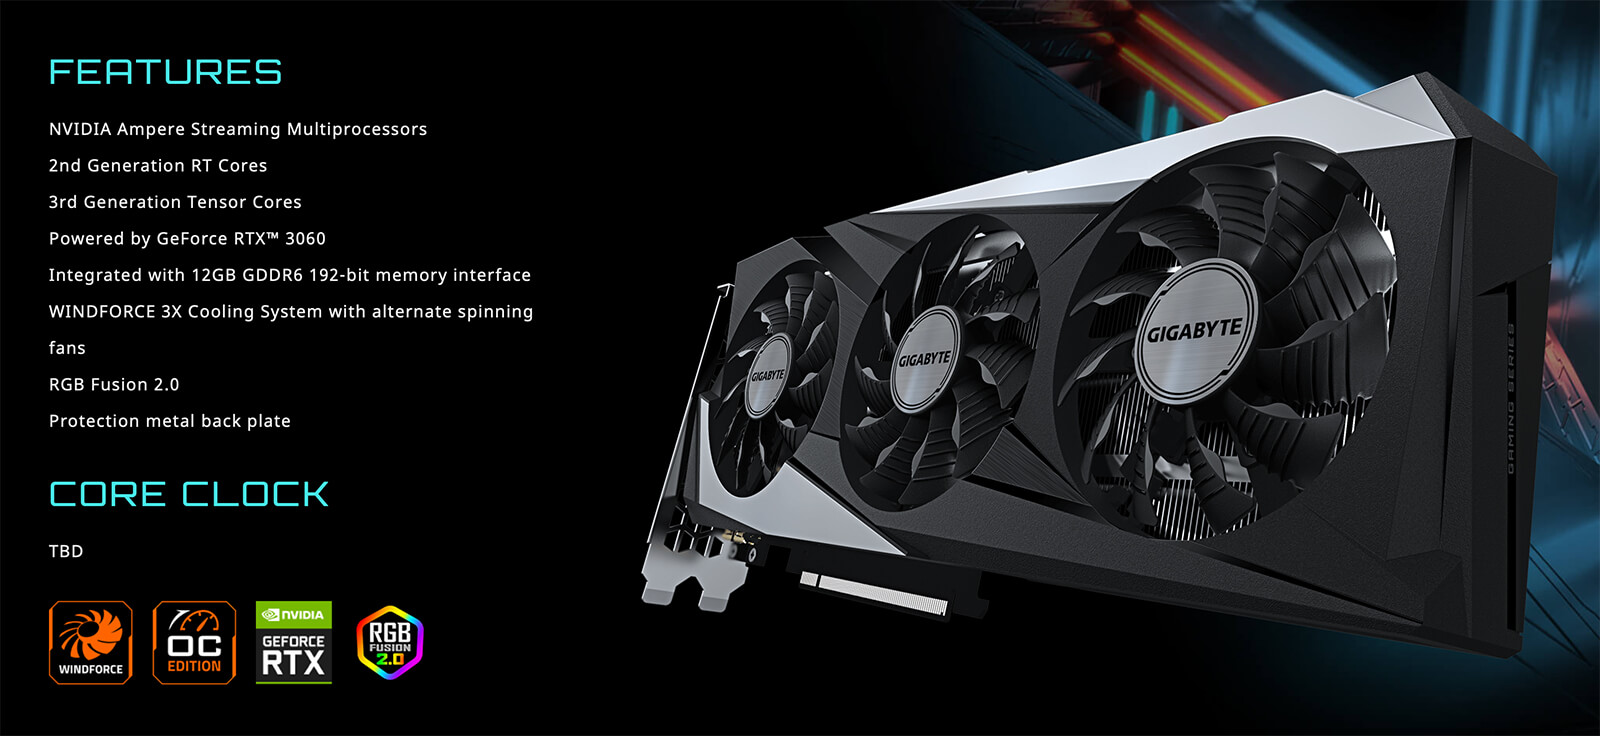 Gigabyte Geforce Rtx™ 3060 Gaming Oc 12g Features